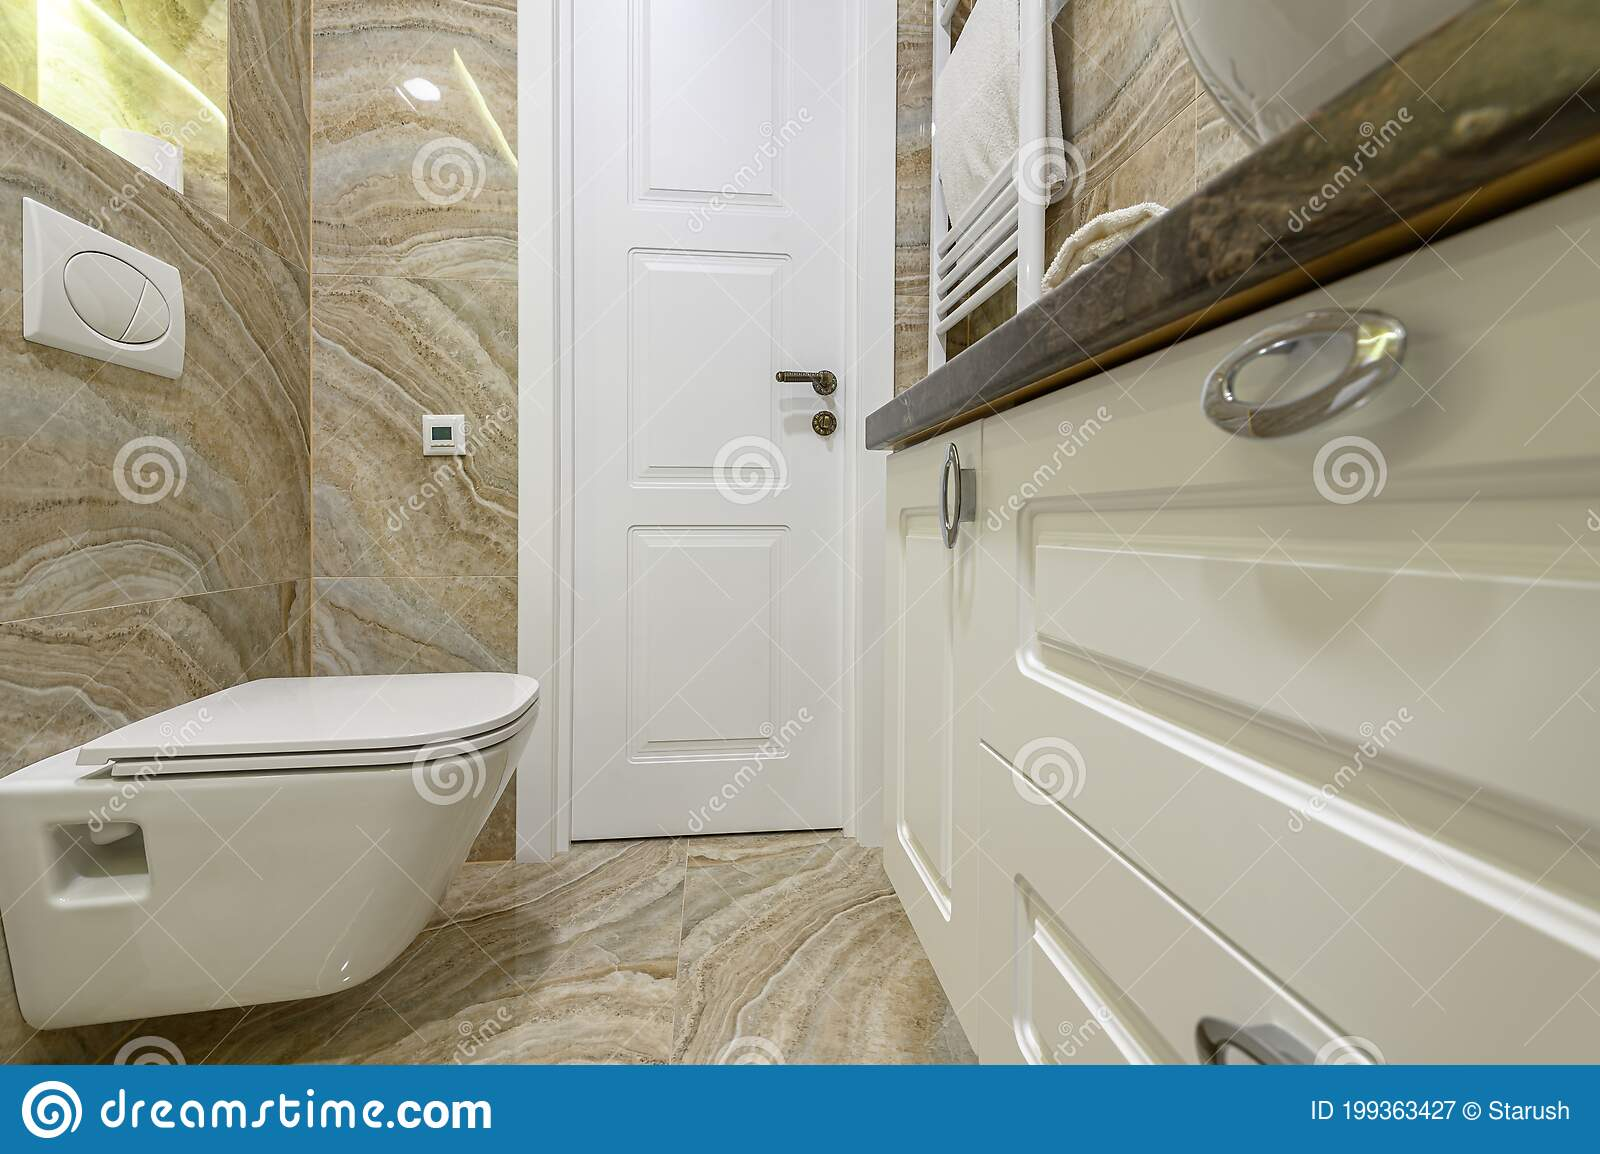 Luxury Bathroom With Beige Marble Tiles Stock Image Image Of Floor House 199363427